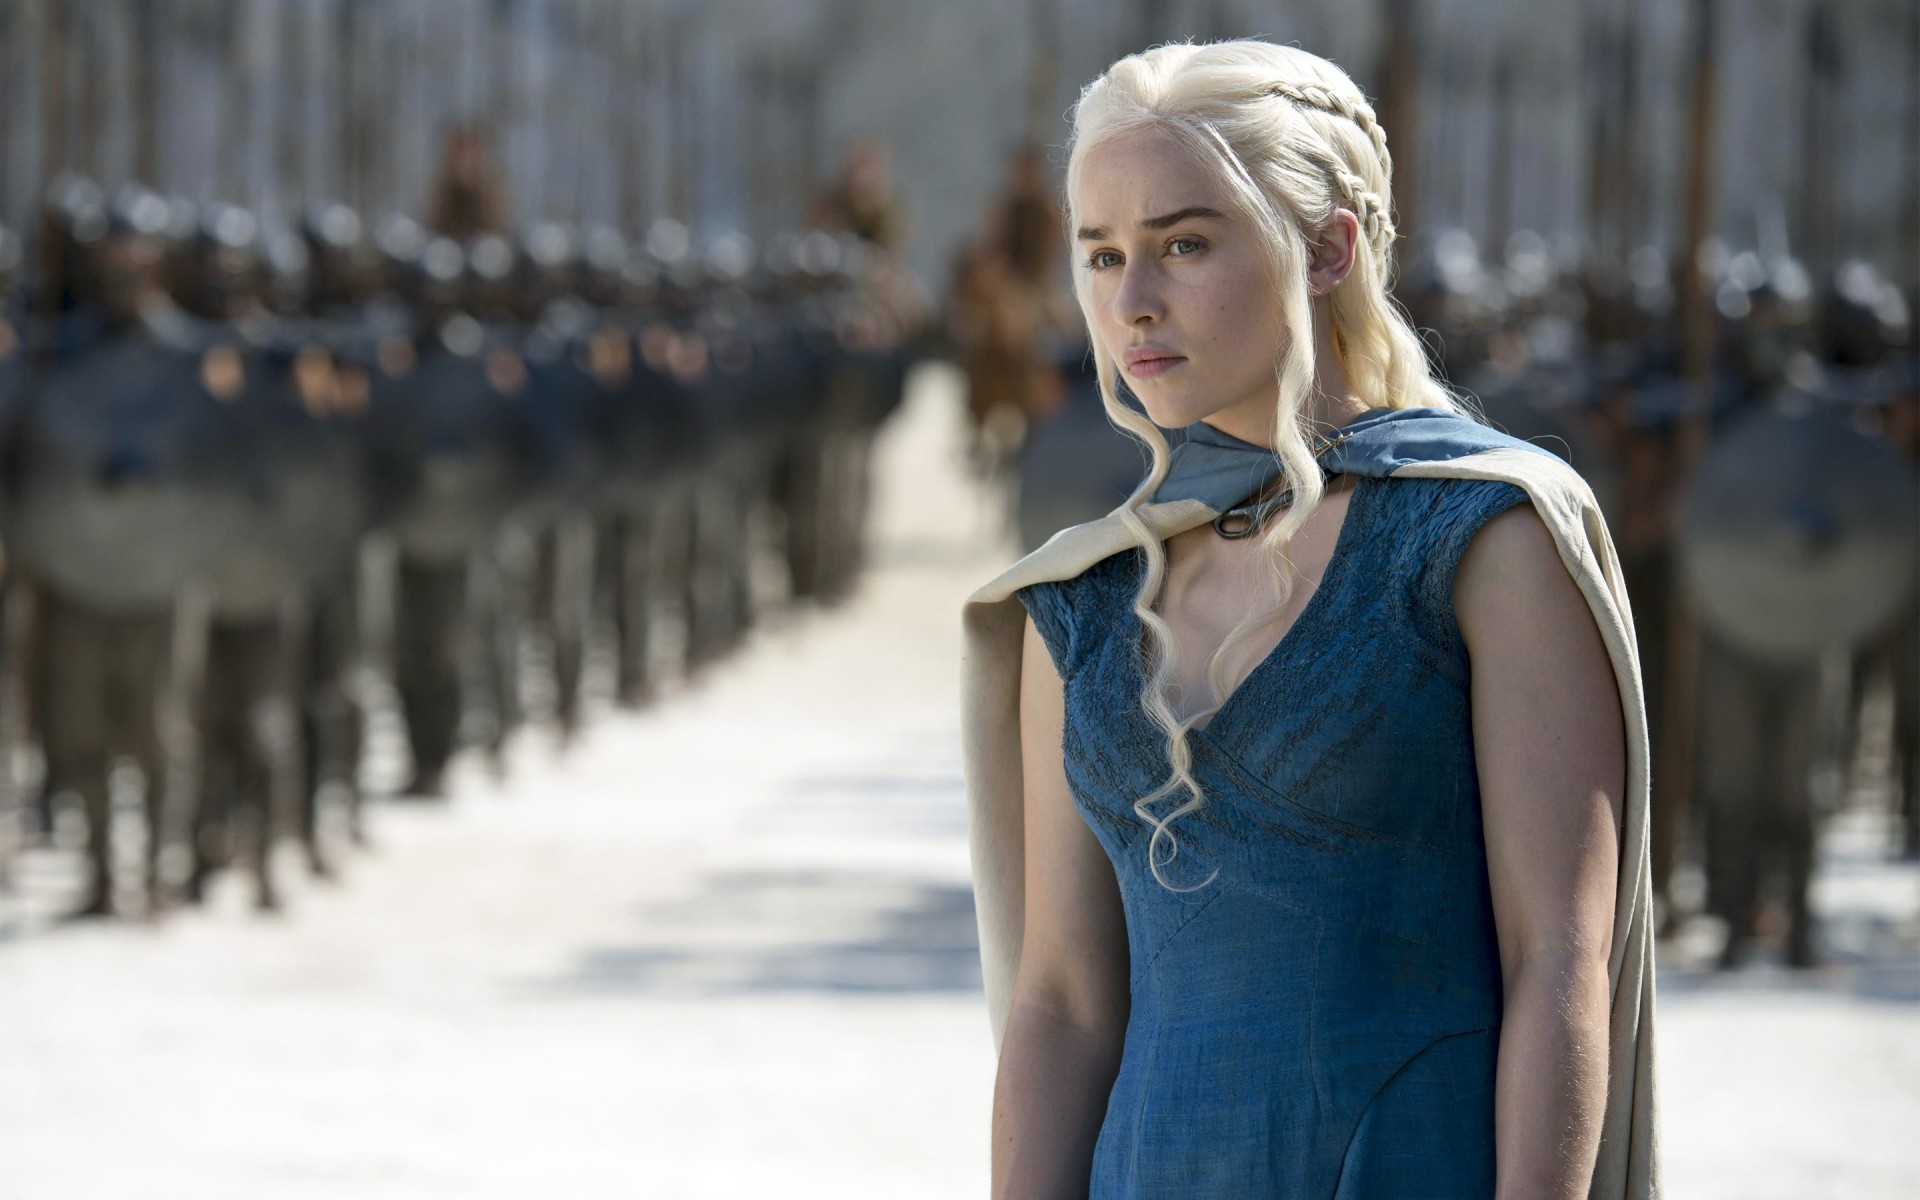 Emilia-Clarke-interprete-game-of-thrones-serie-TV